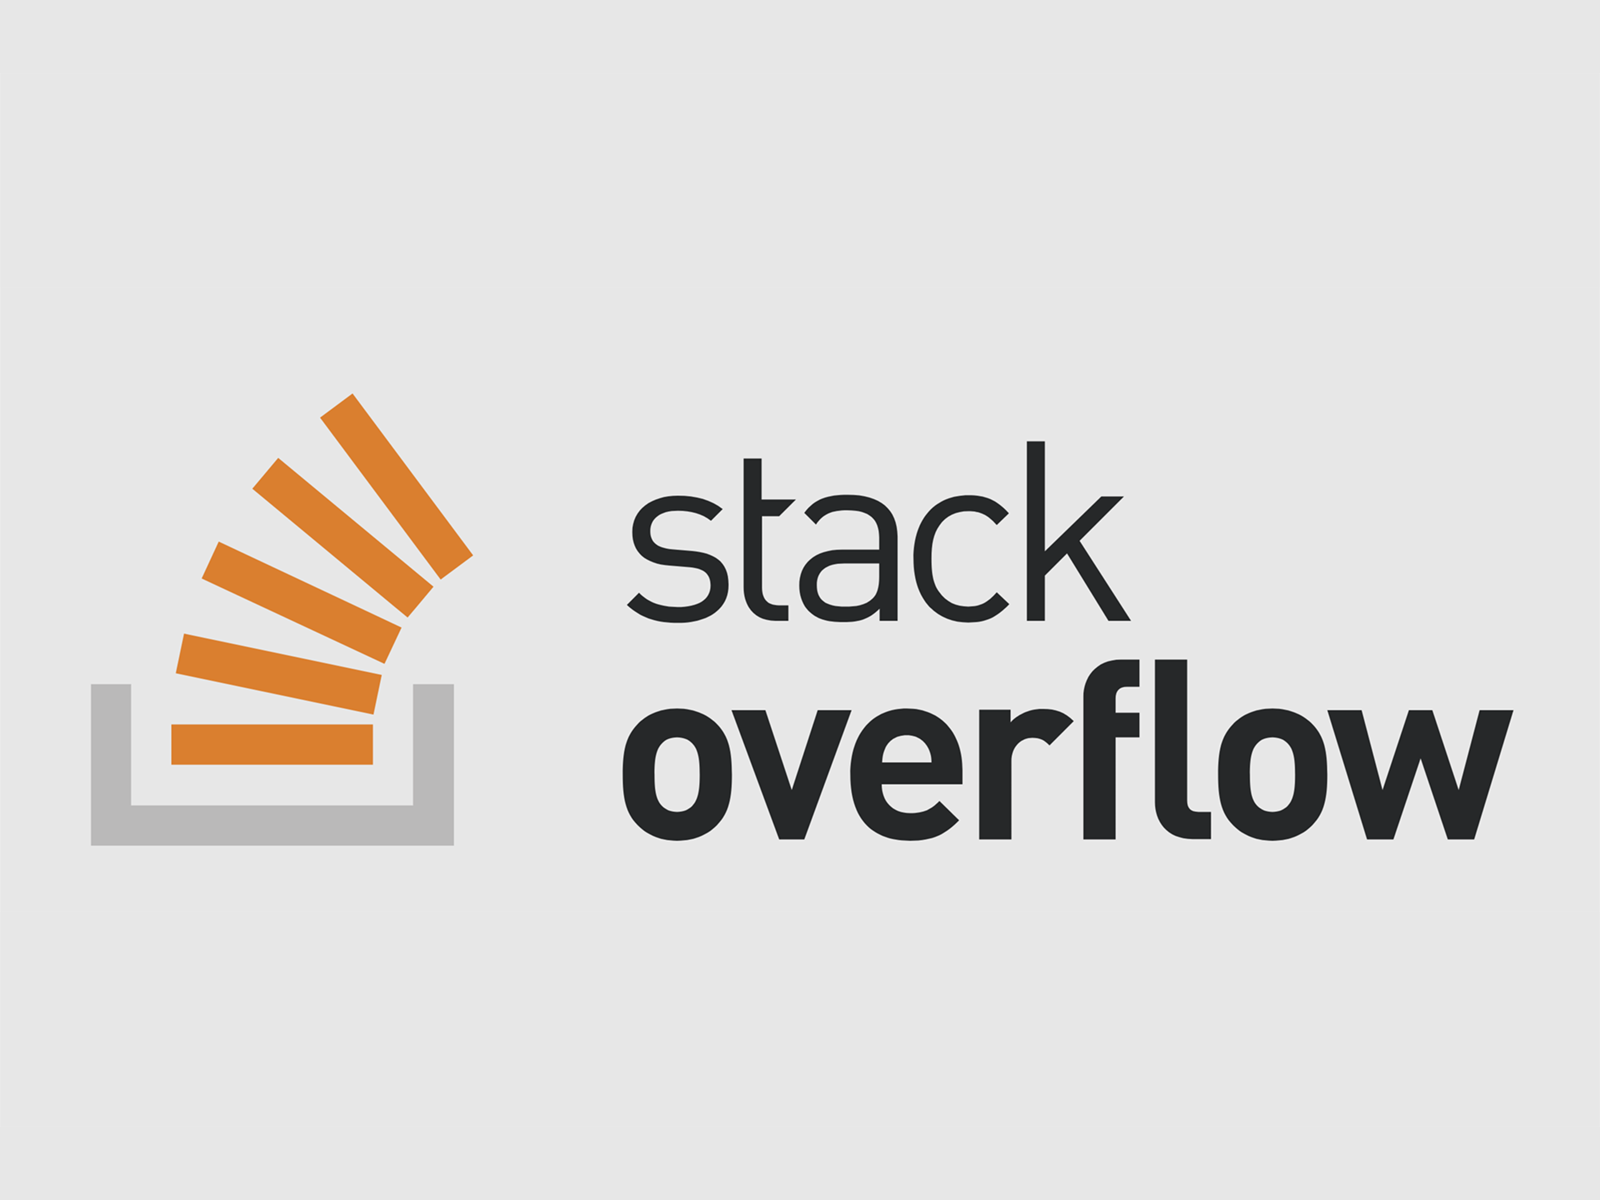 Effectively use StackOverflow as a contributor